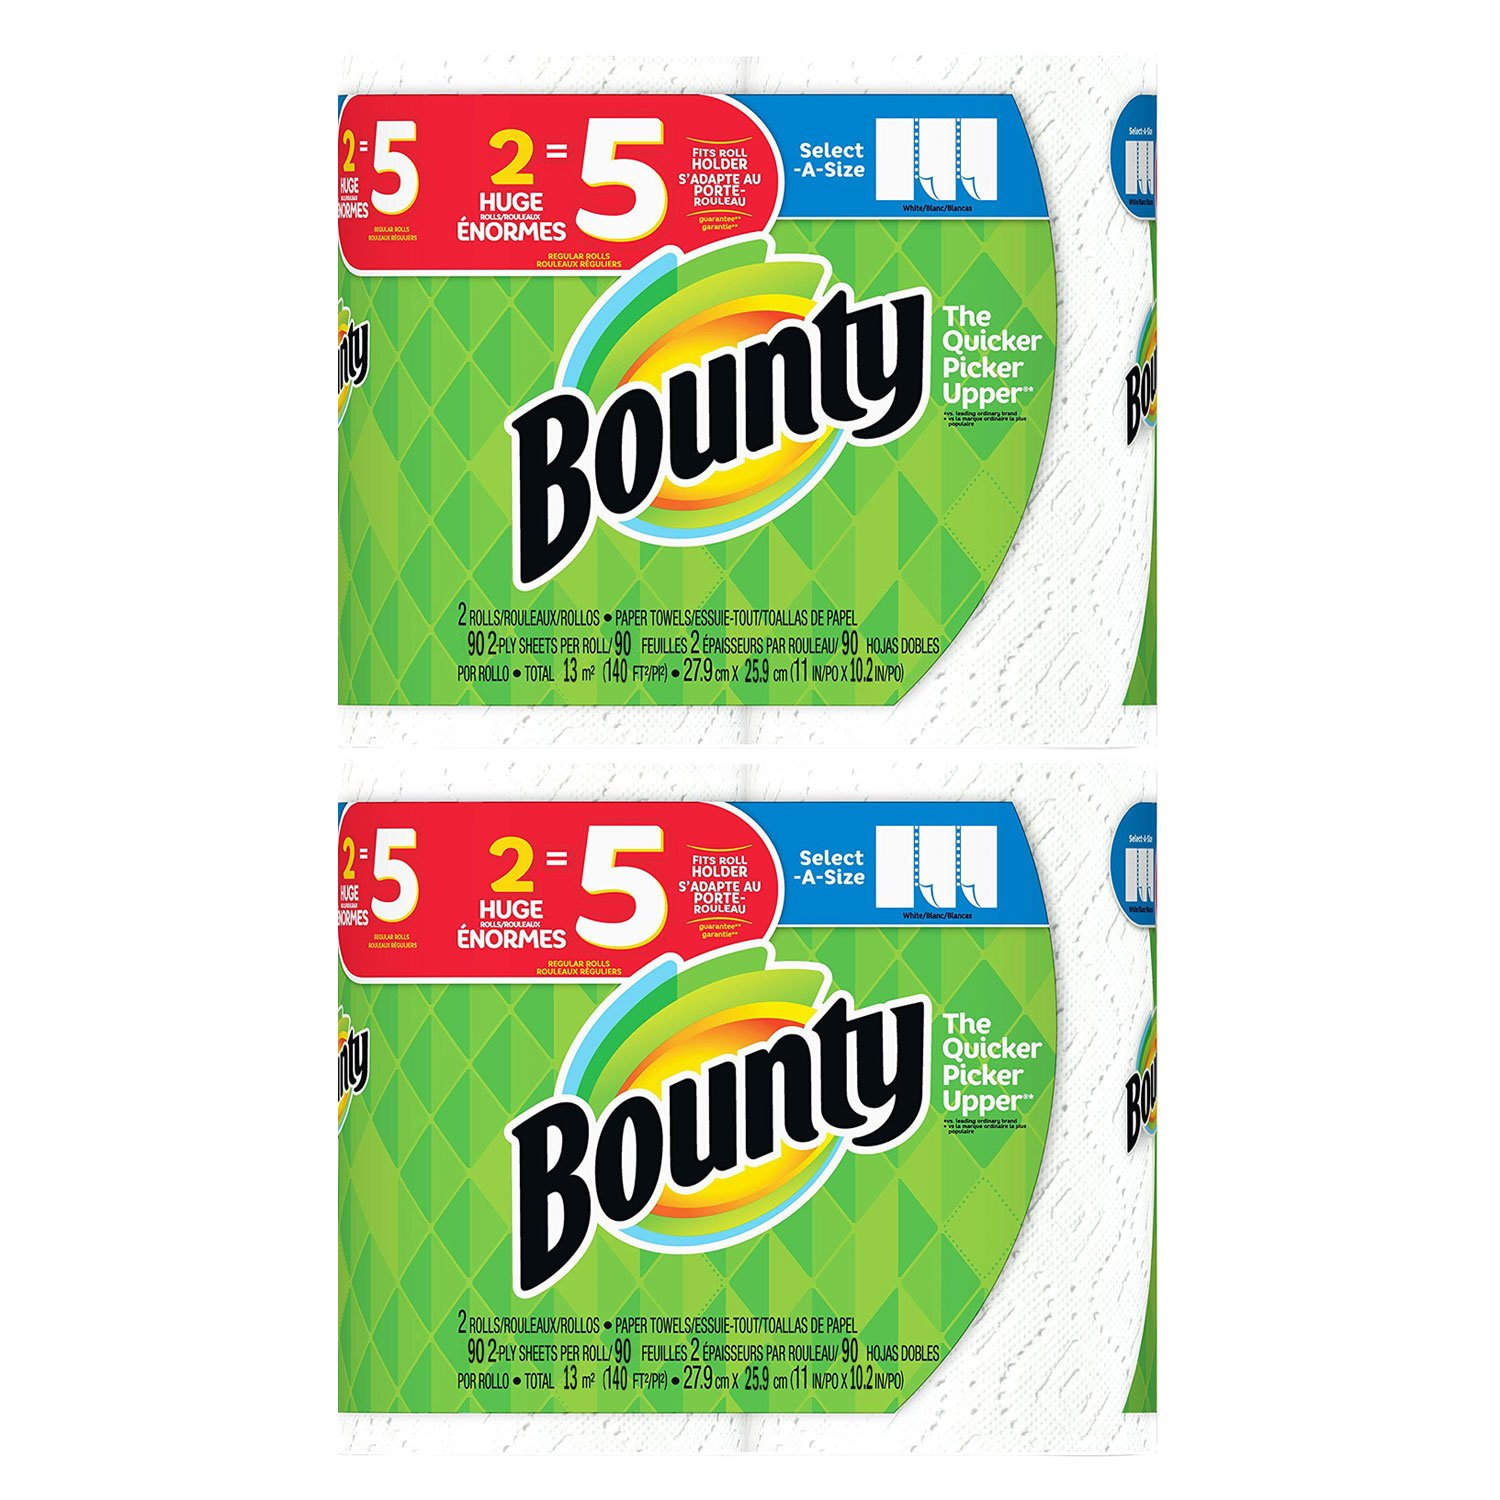 Amazon.com : Bounty 2-ply paper towels, 11